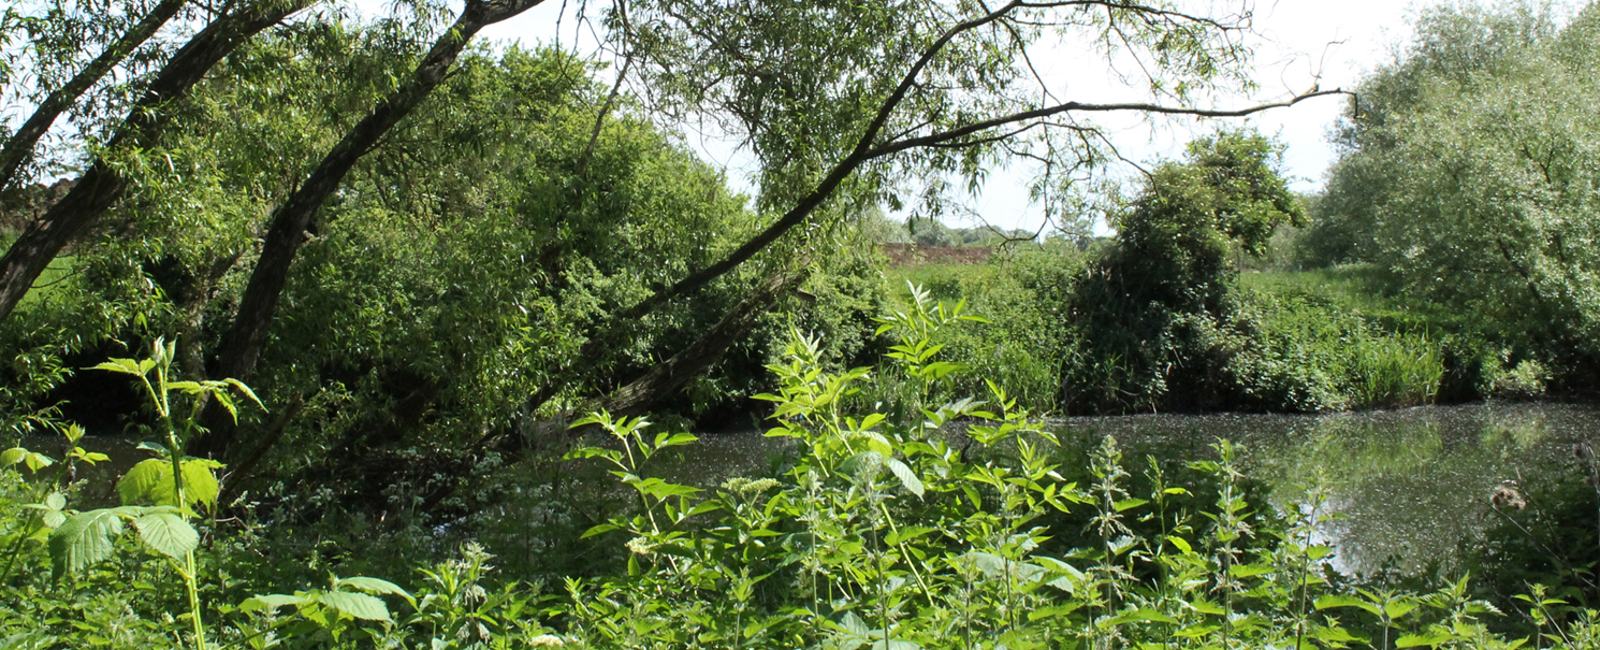 Trees on the River Great Ouse